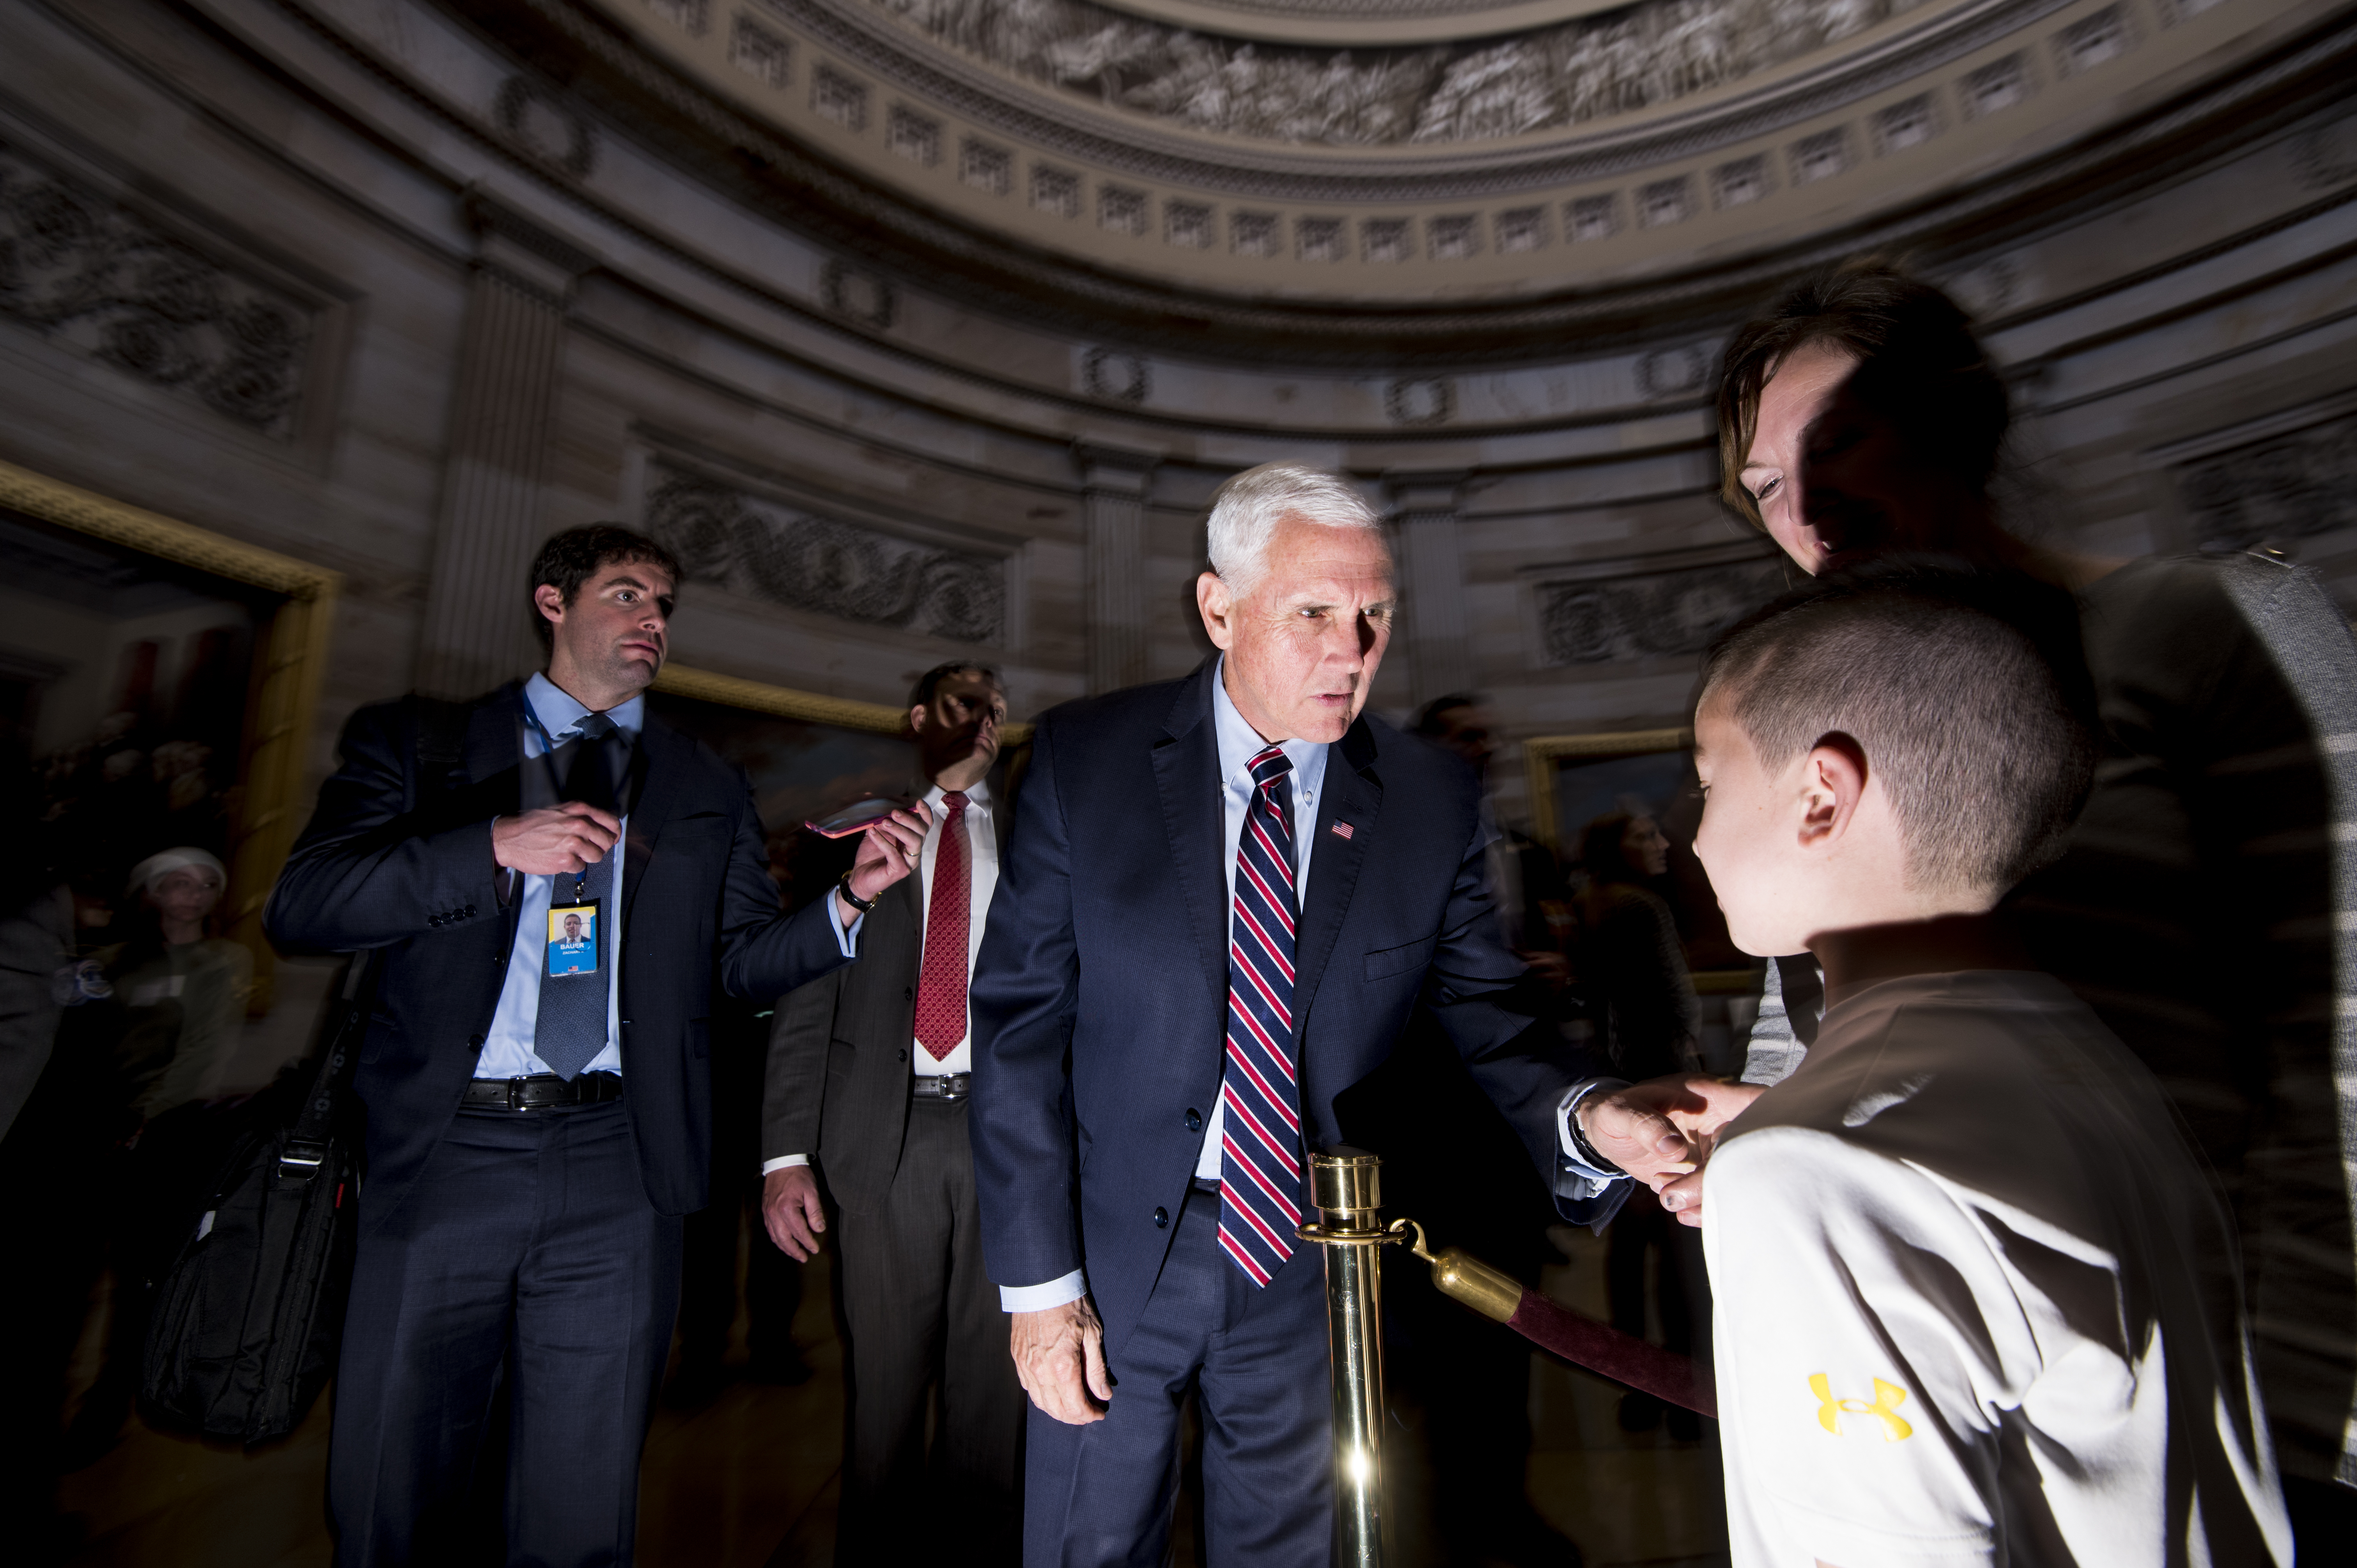 UNITED STATES - DECEMBER 17: Vice President Mike Pence chats with tourists in the Capitol Rotunda as he leaves the Senate Republicans' policy lunch on Tuesday, Dec. 17, 2019. (Photo By Bill Clark/CQ Roll Call)